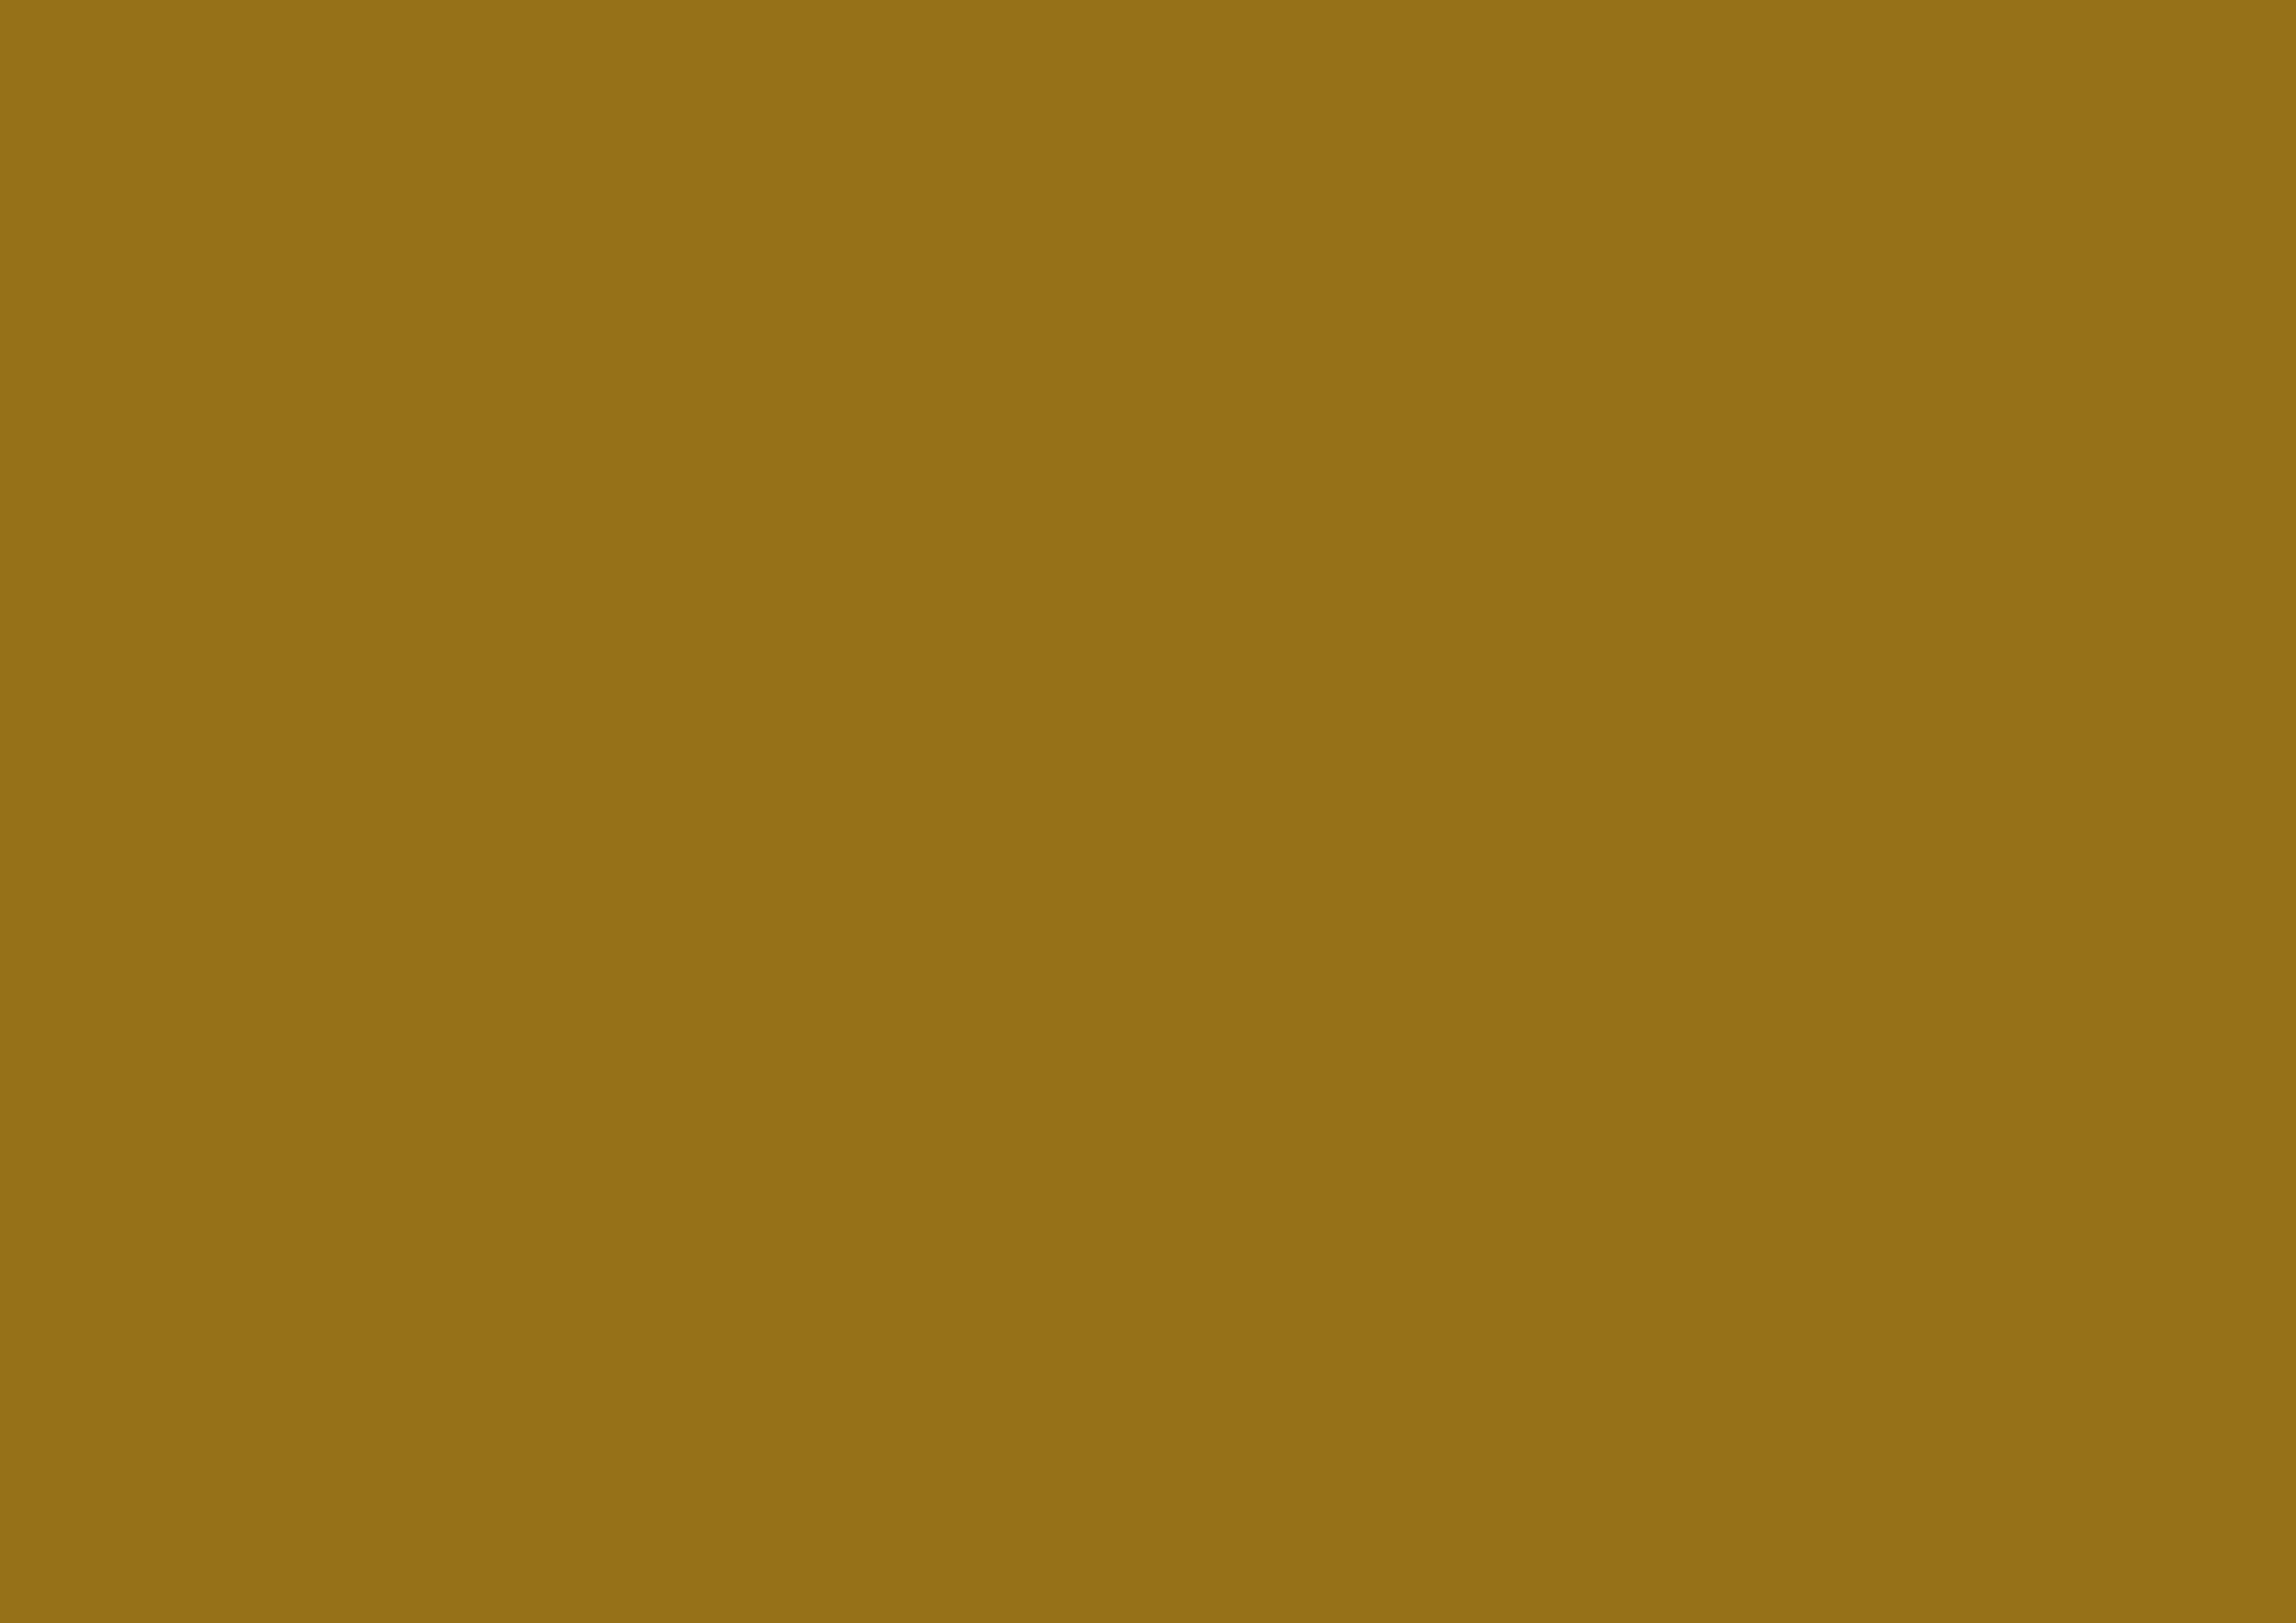 3508x2480 Bistre Brown Solid Color Background